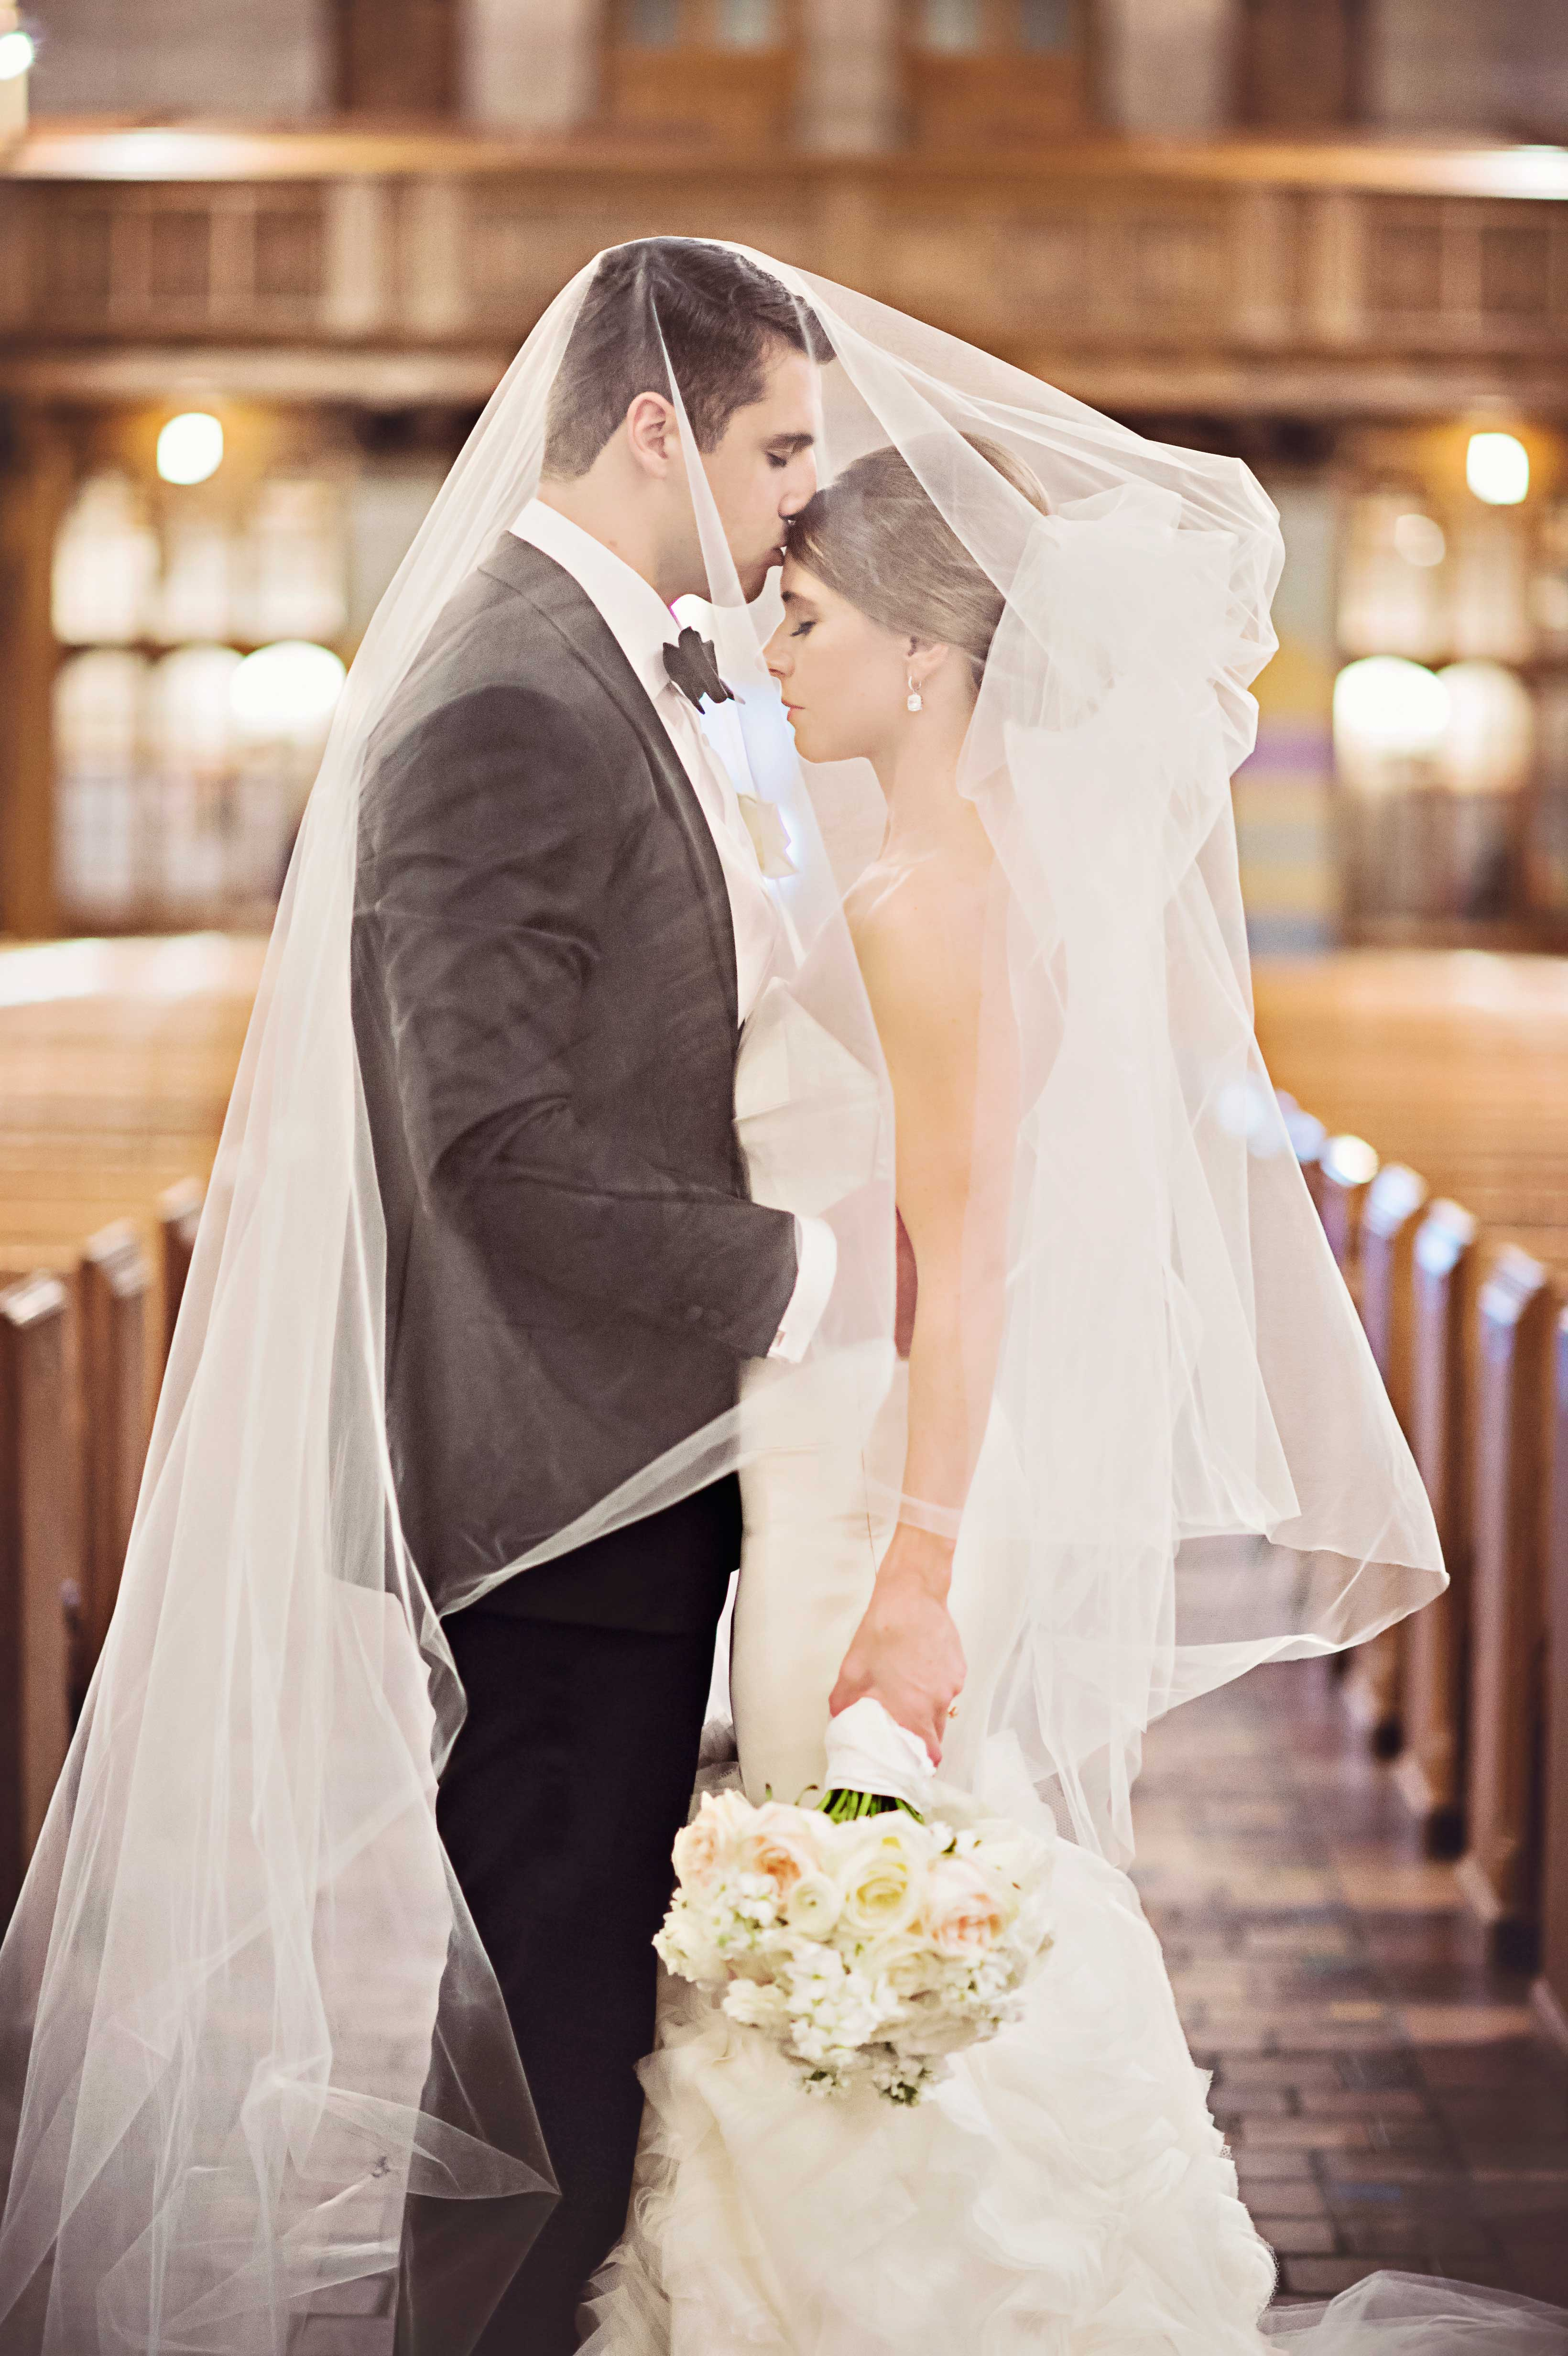 Swoon Worthy Poses For Your Wedding Day Photo Shoot